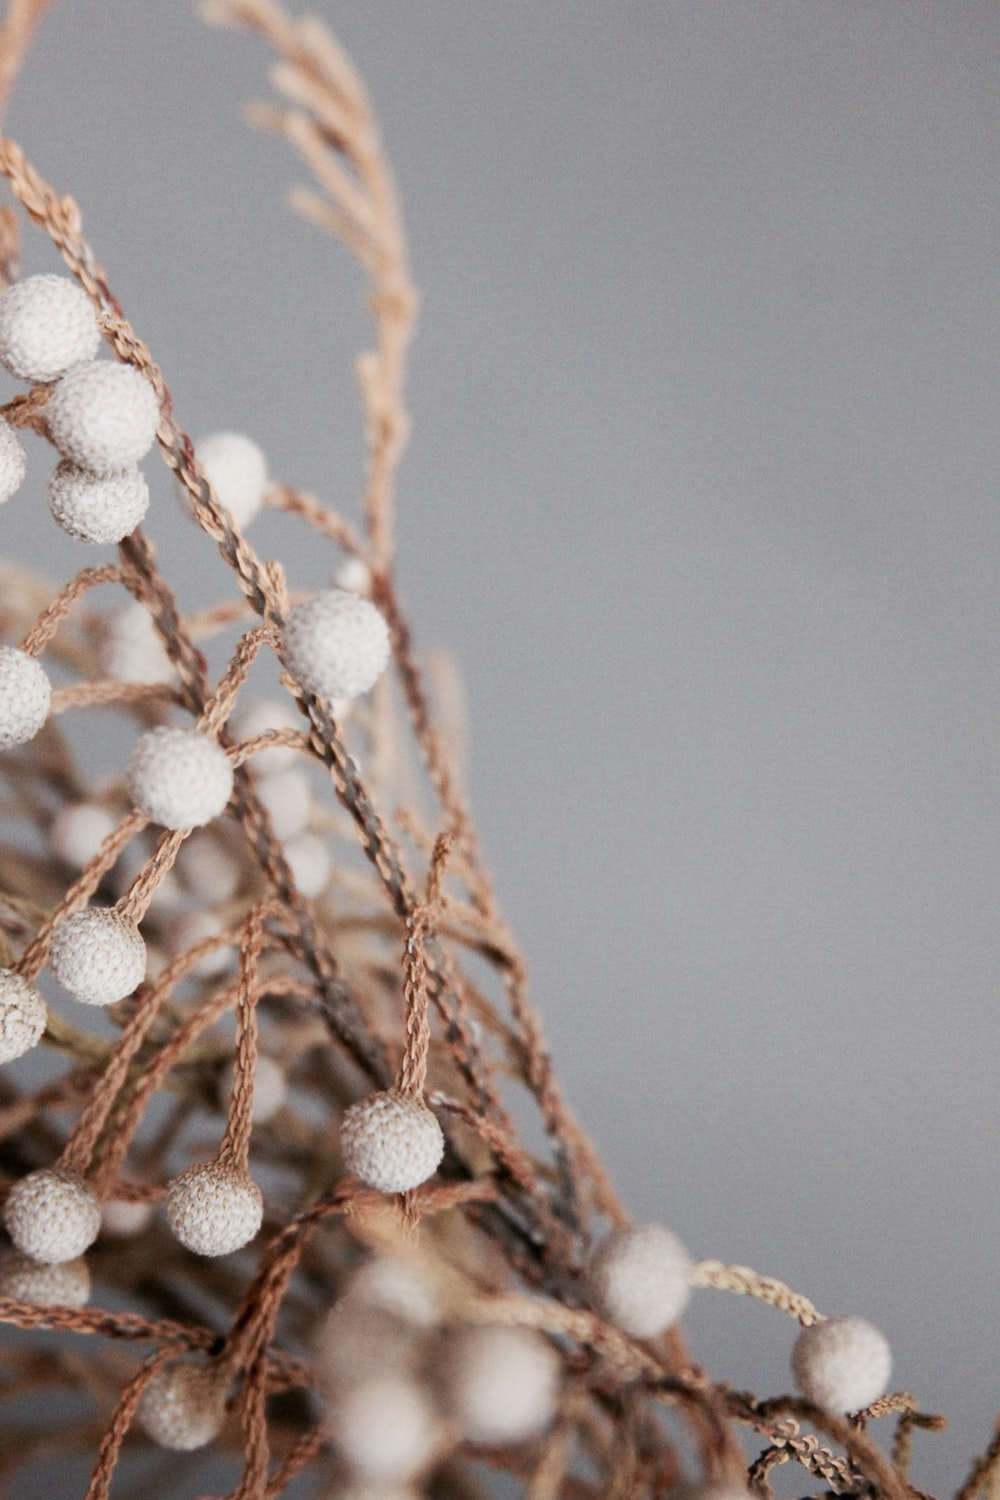 white round flowers on brown tree branch